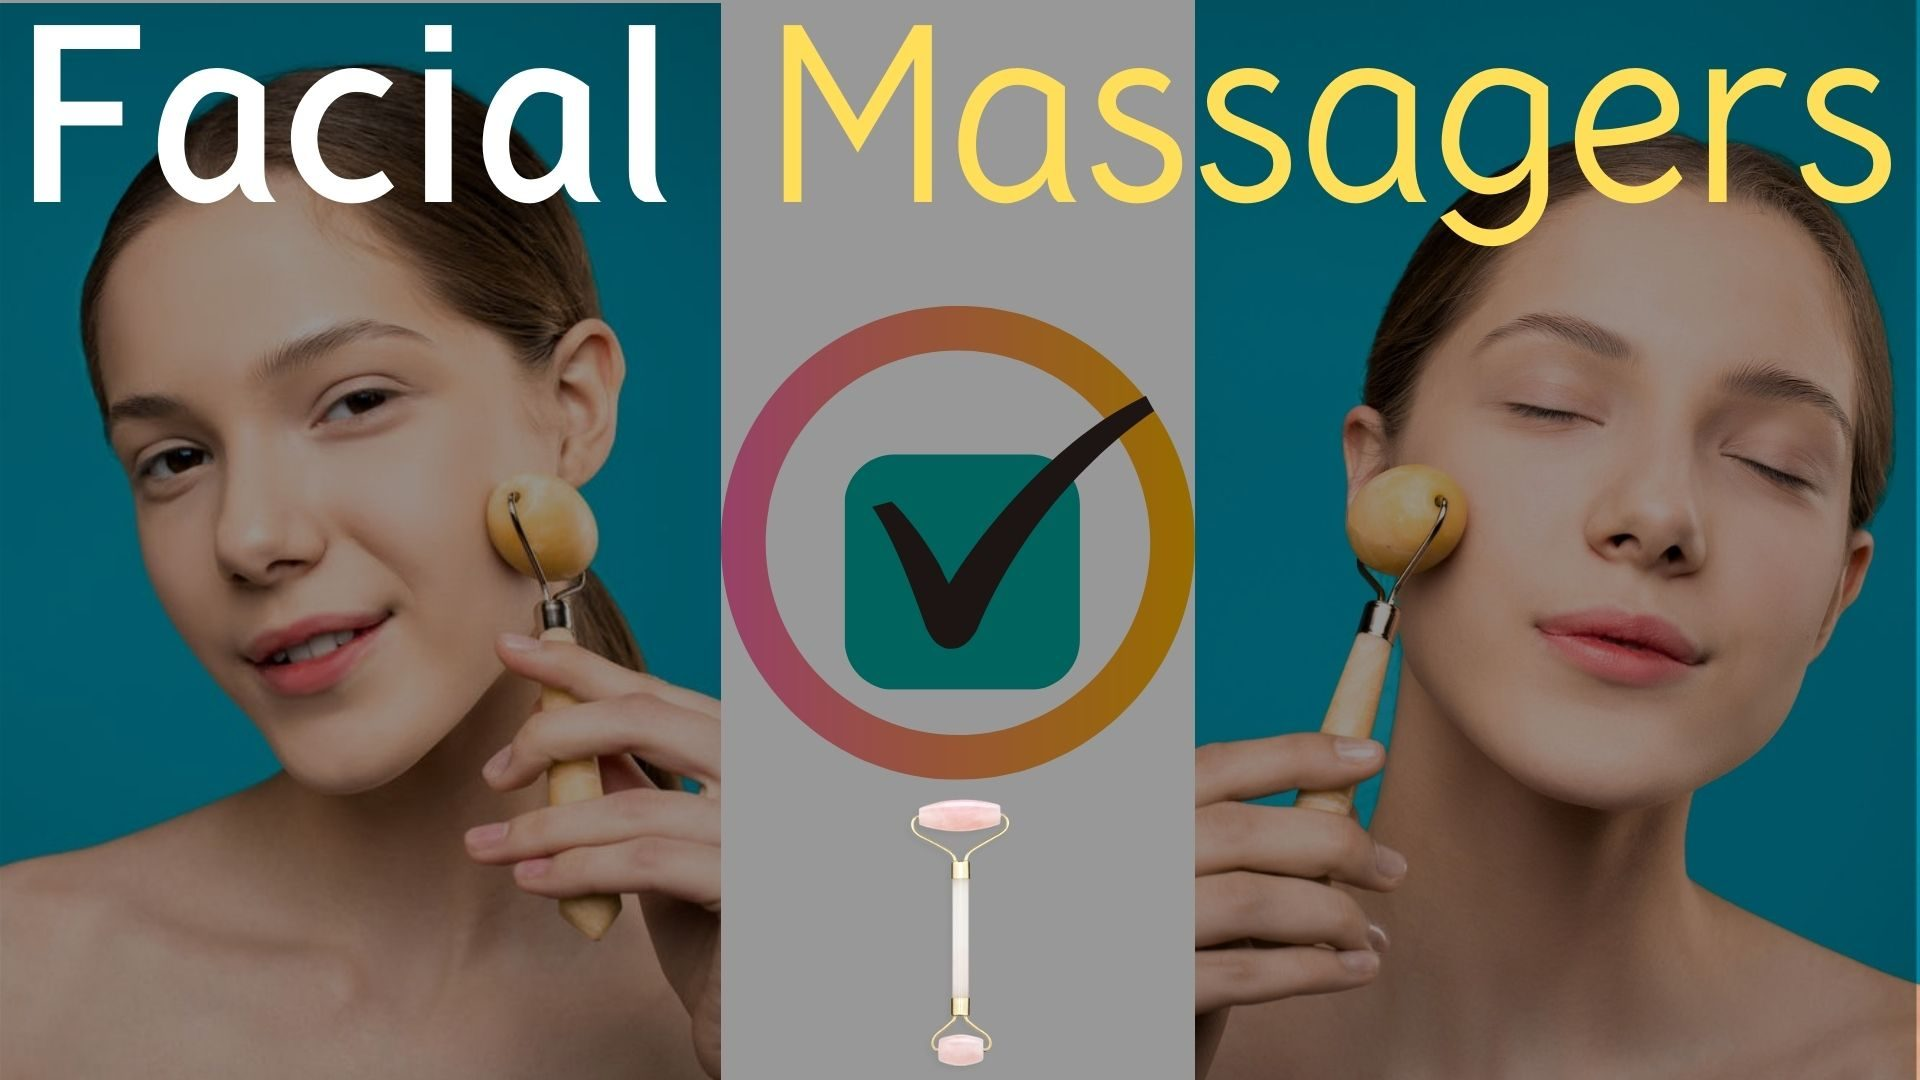 Facial Massagers